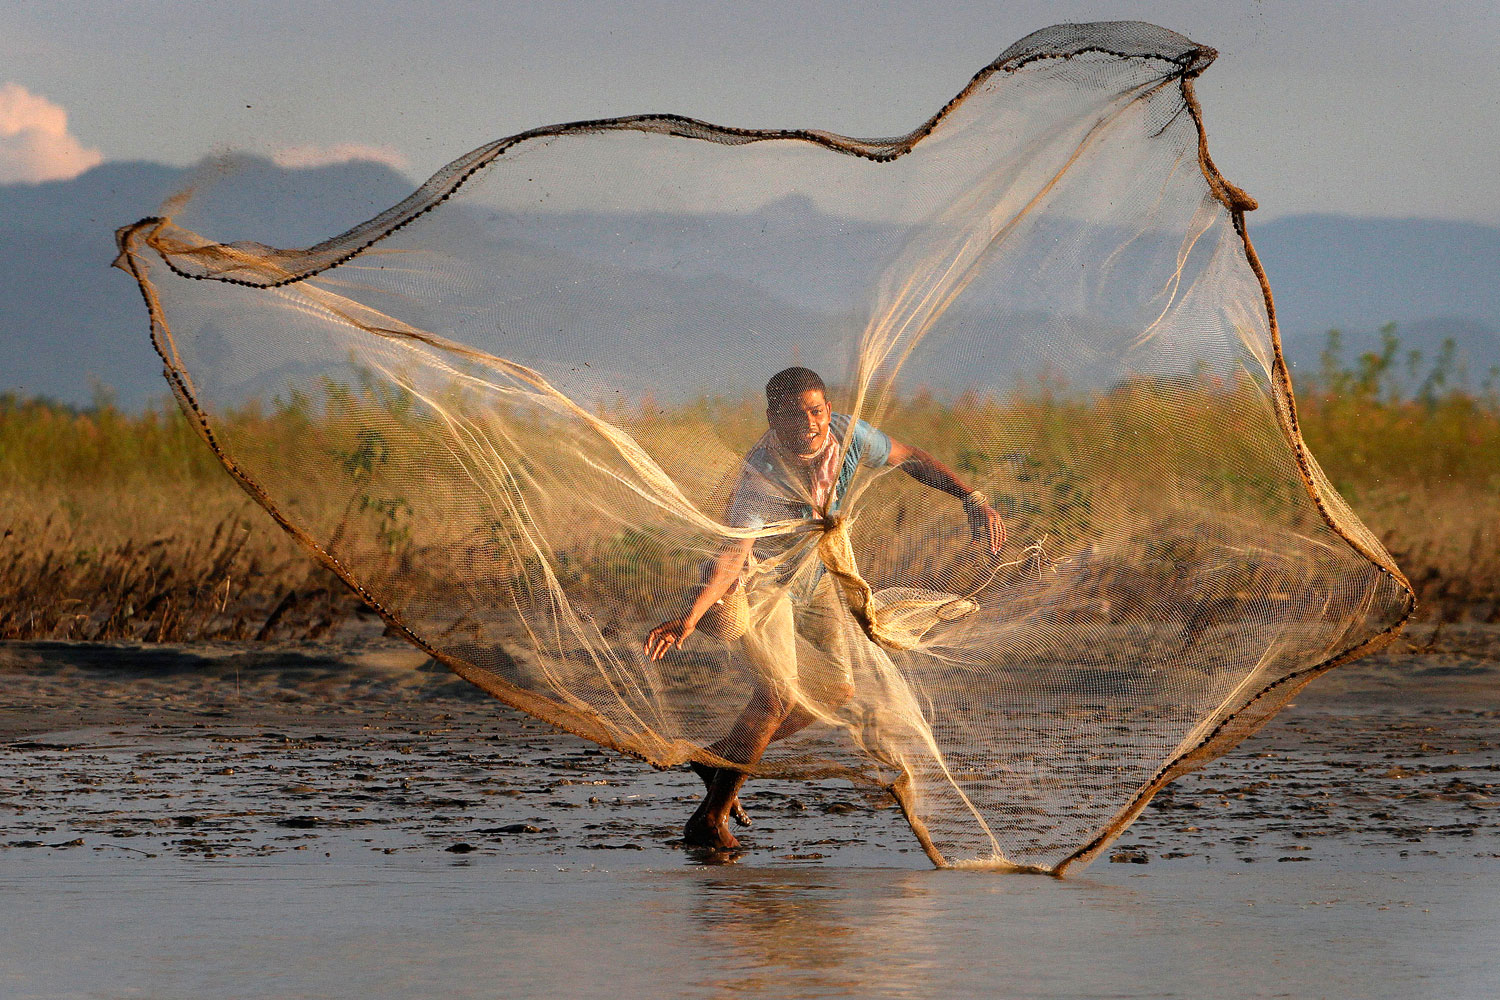 Aug. 30, 2011. An Indian villager throws a fishing net into the River Brahmaputra at Suwalkuchi, west of Gauhati, India.